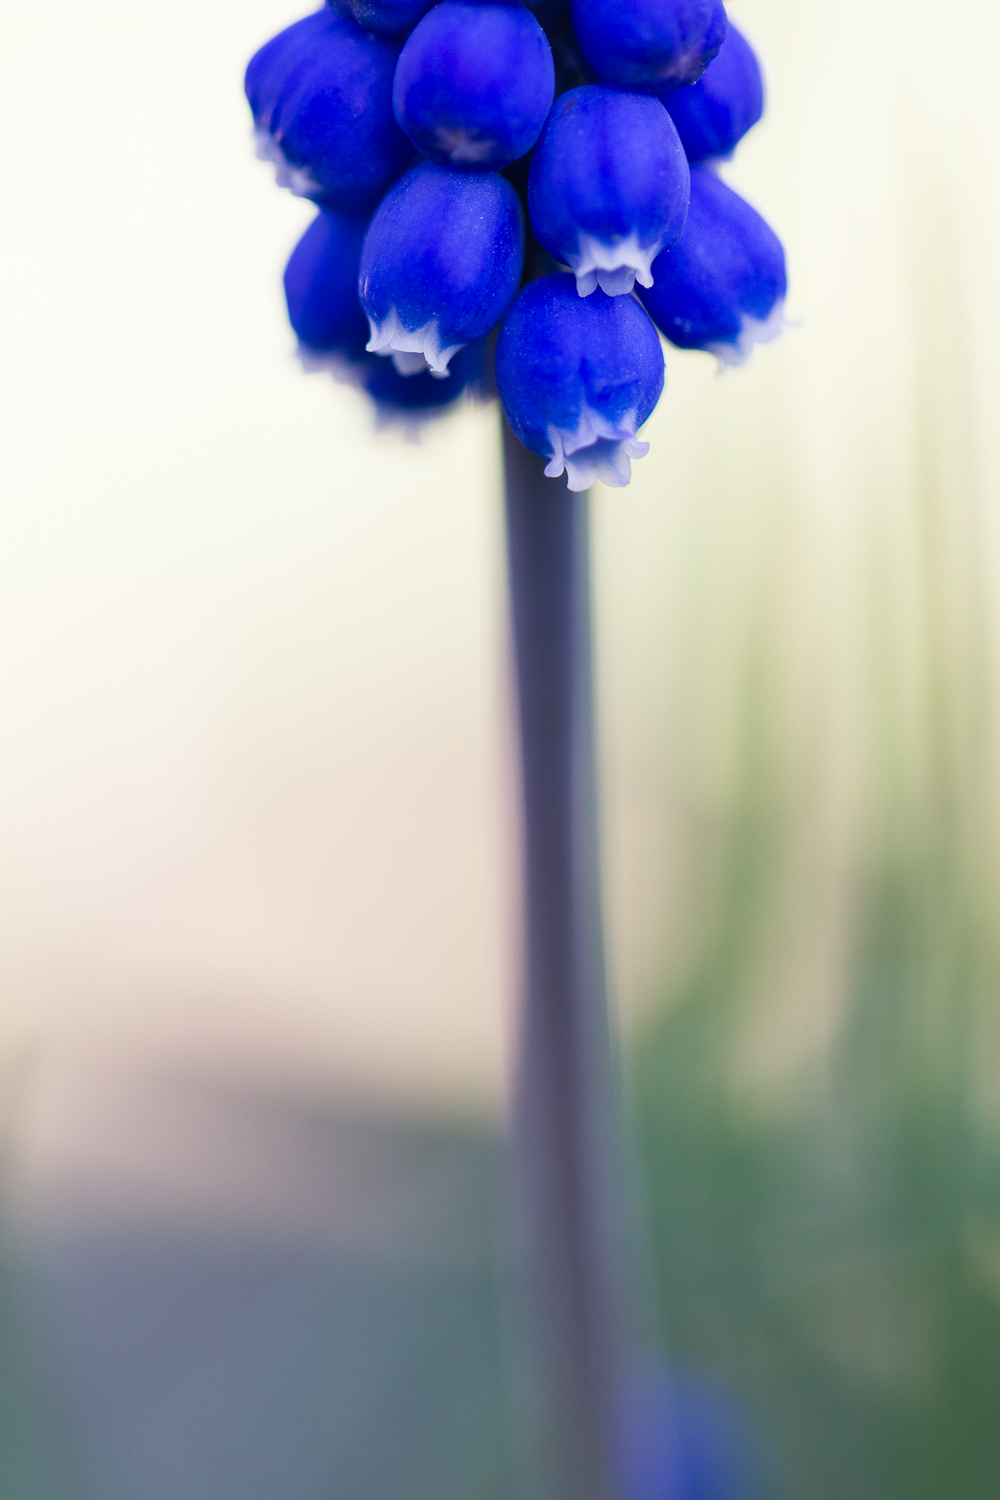 flower macro photography grape hyacinth - negative space